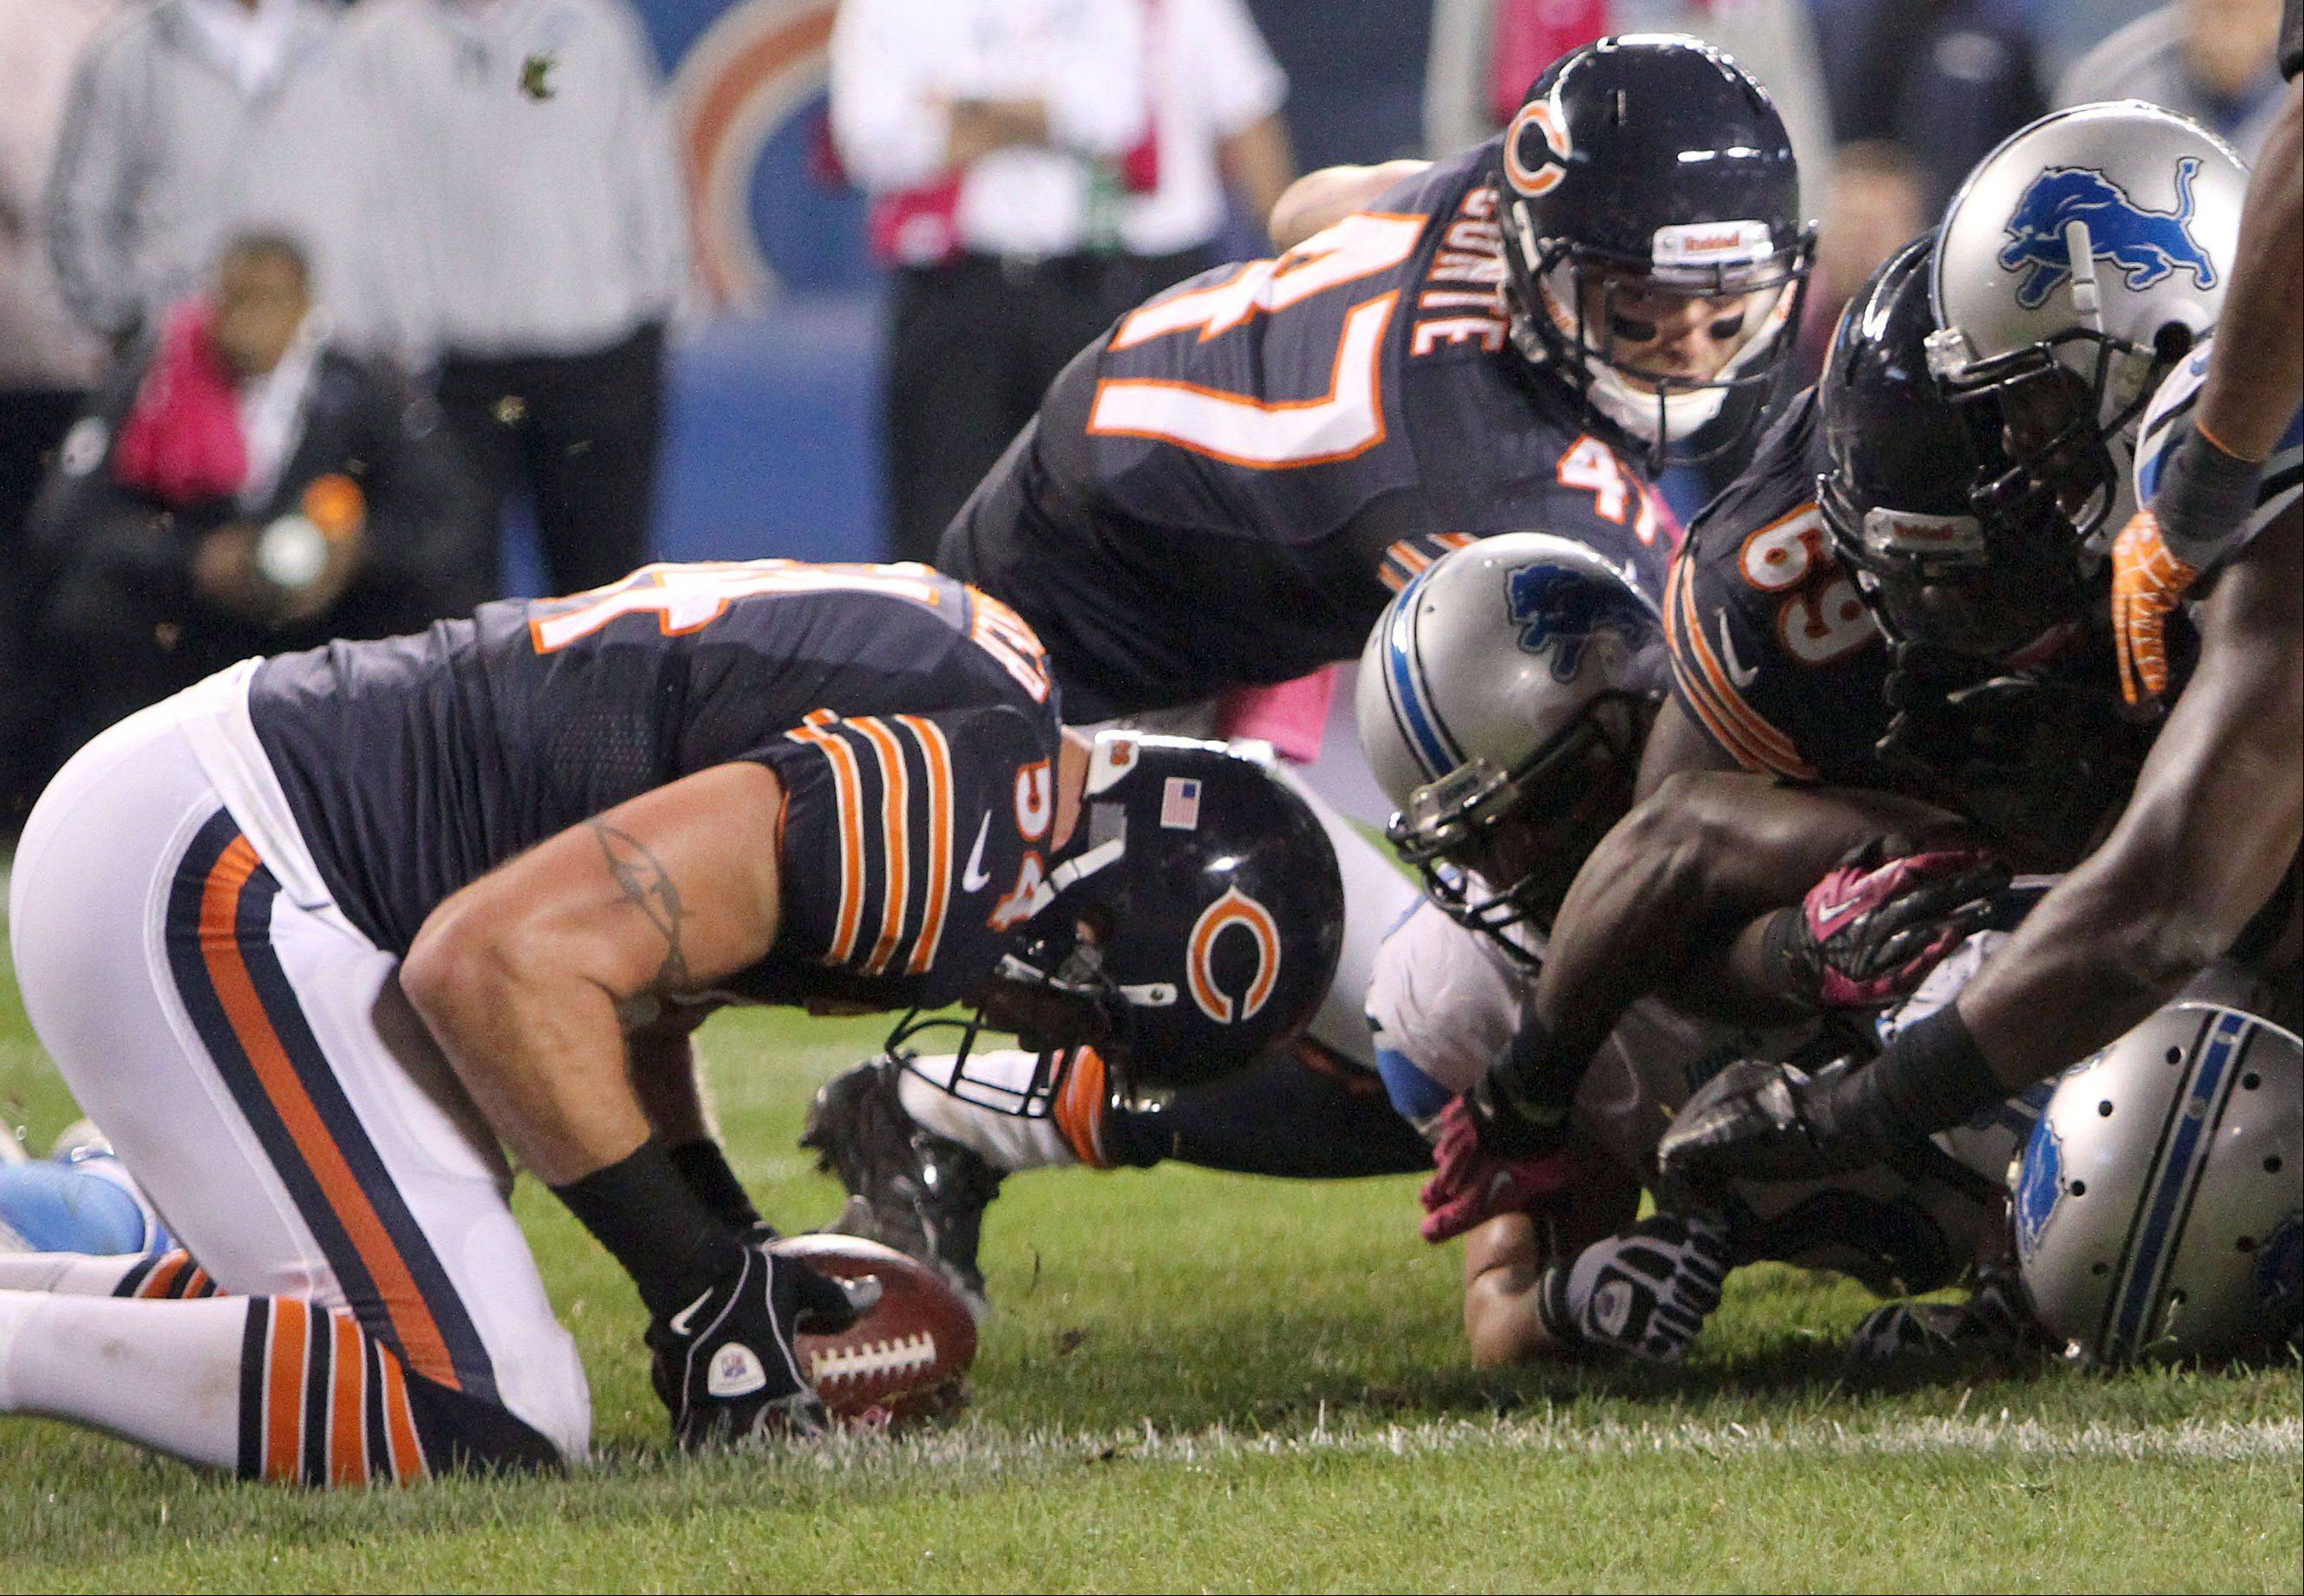 Chicago Bears middle linebacker Brian Urlacher recovers a fumble on the one yard line.